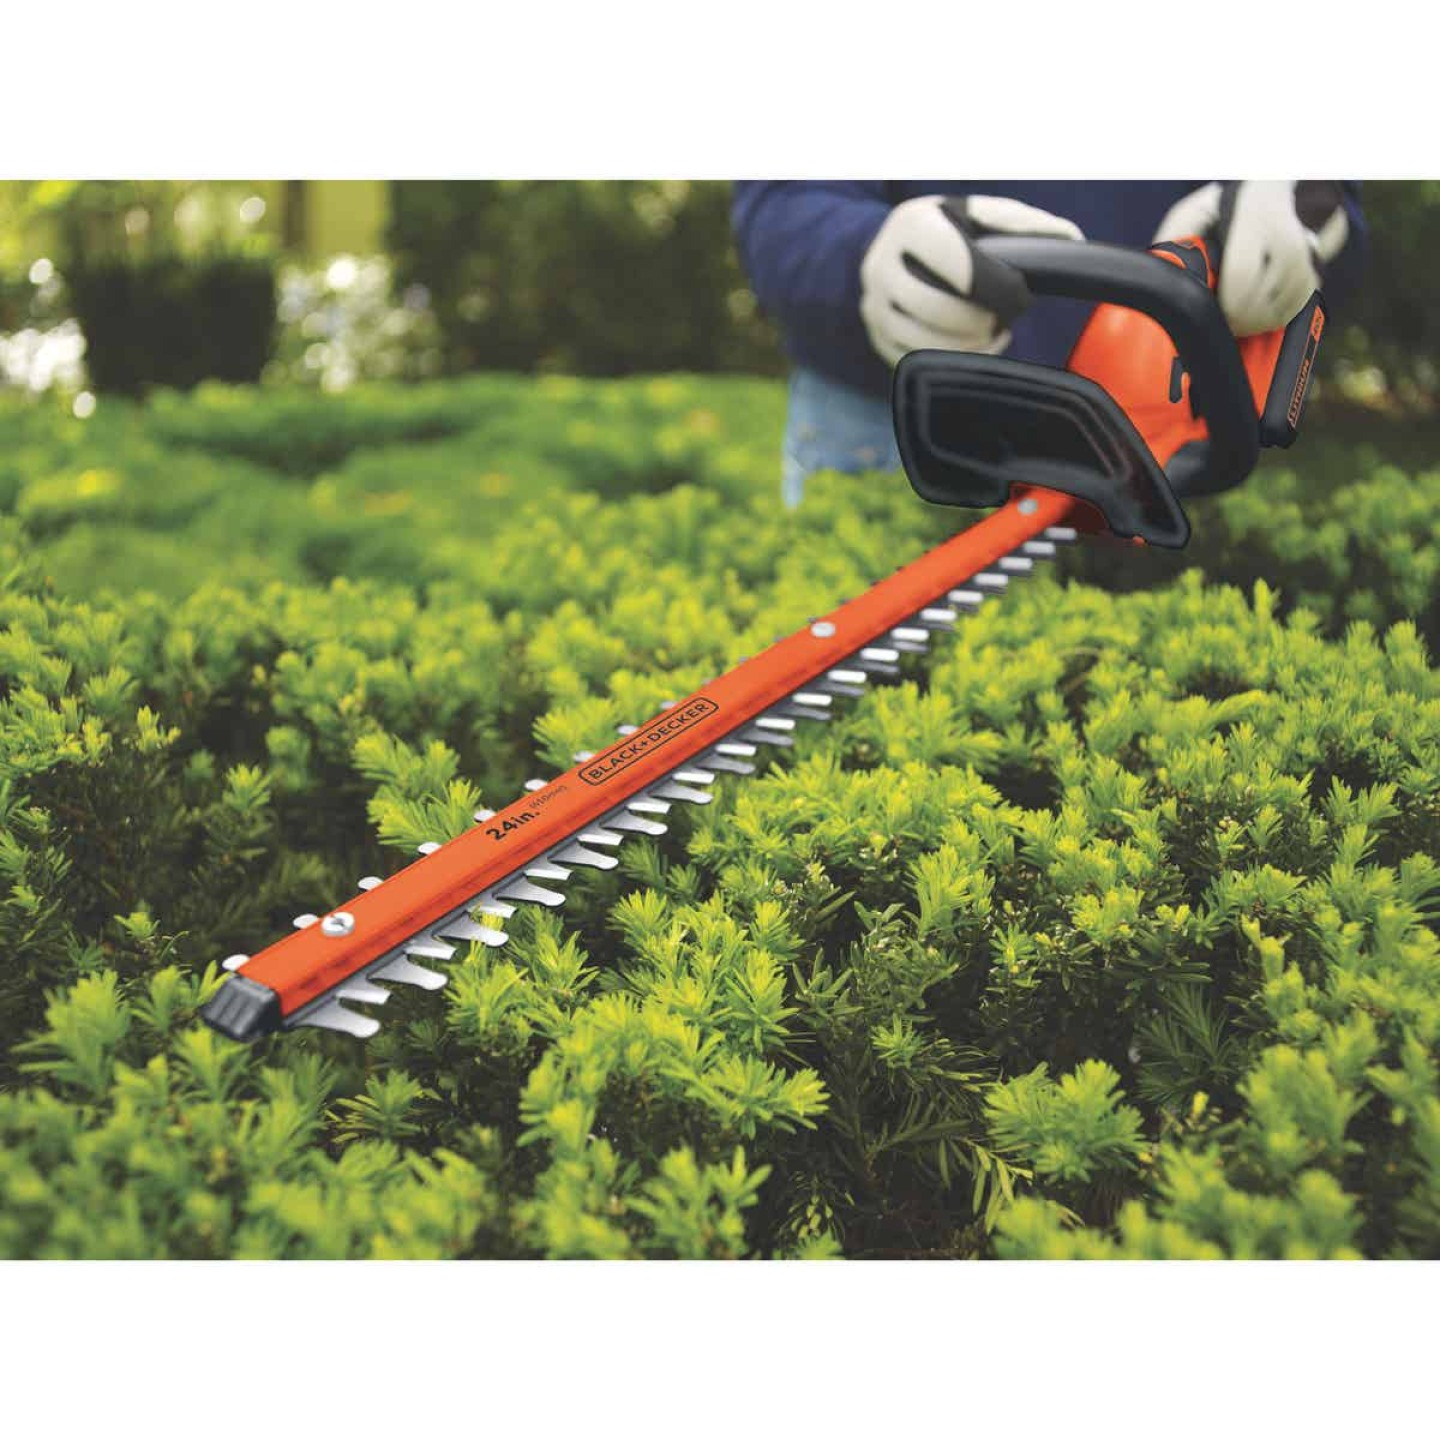 Black & Decker 24 In. 40V Lithium Ion Cordless Hedge Trimmer Image 4